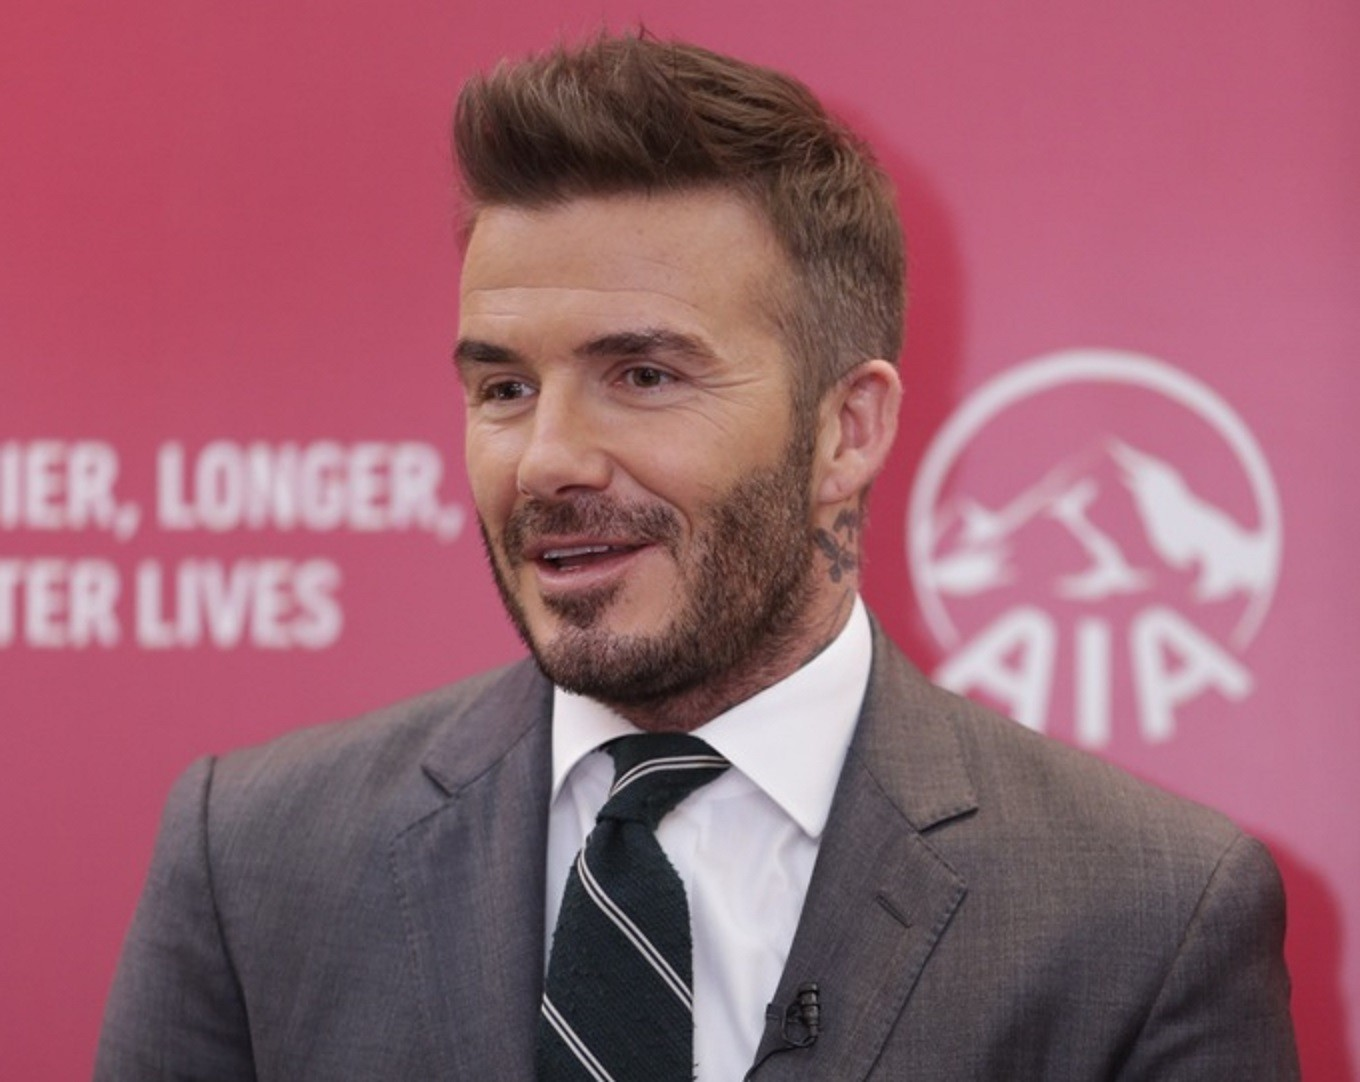 'Tough' to play soccer in Indonesia, says Beckham